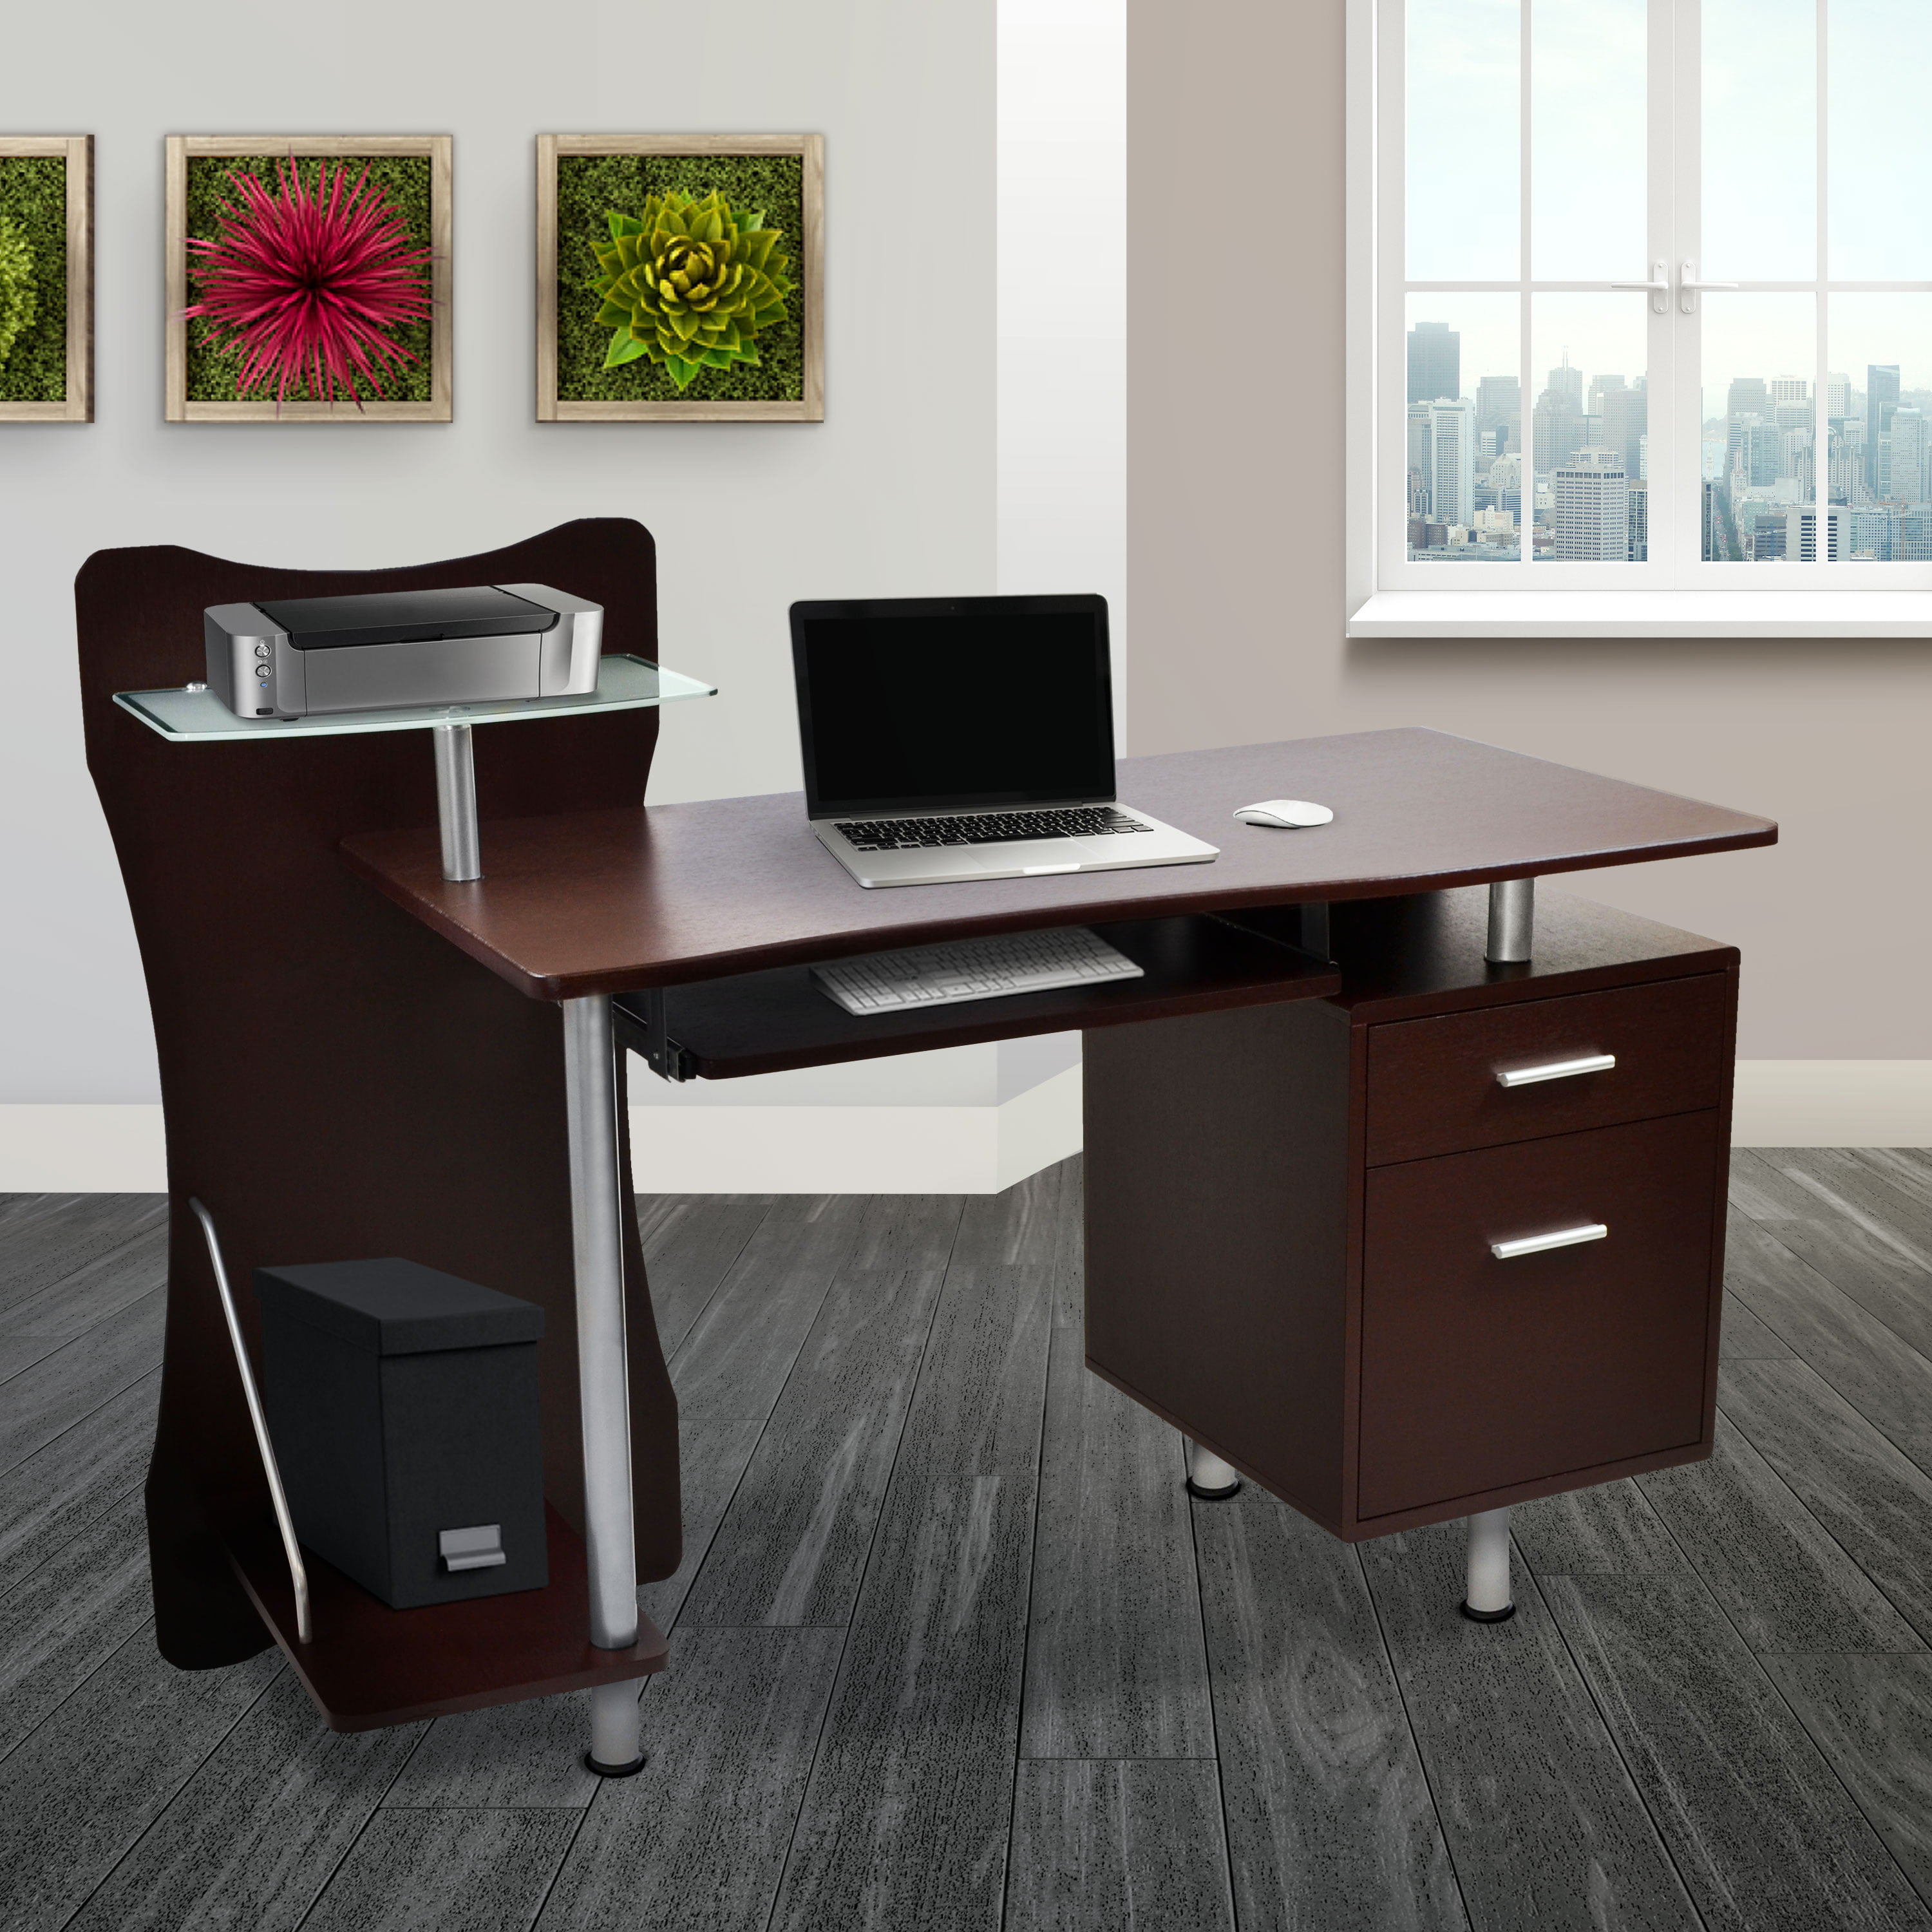 Techni Mobili Stylish Computer Desk With Storage Chocolate Rta 325 Ch36 Walmart Com Walmart Com